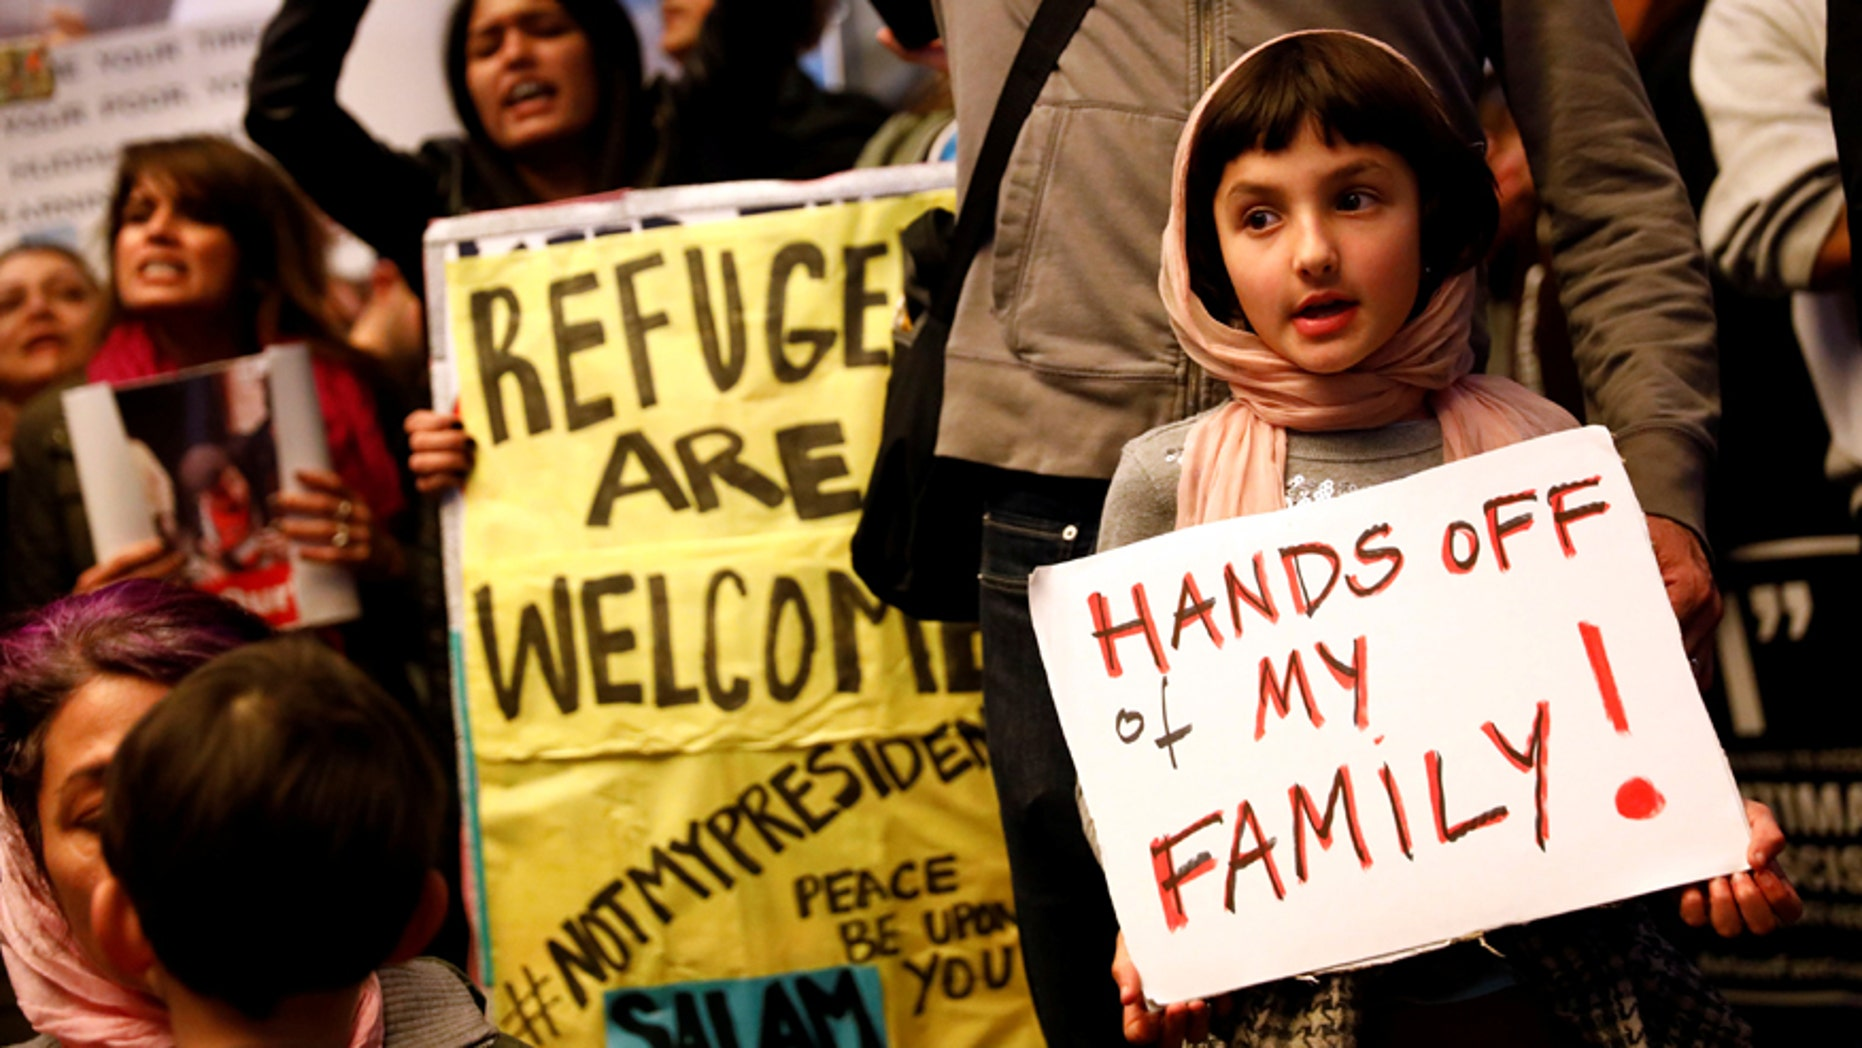 Rosalie Gurna, 9, holds a sign in support of Muslim family members as people protest against U.S. President Donald Trump's travel ban on Muslim majority countries, at the International terminal at Los Angeles International Airport (LAX) in Los Angeles, California, U.S., January 28, 2017.